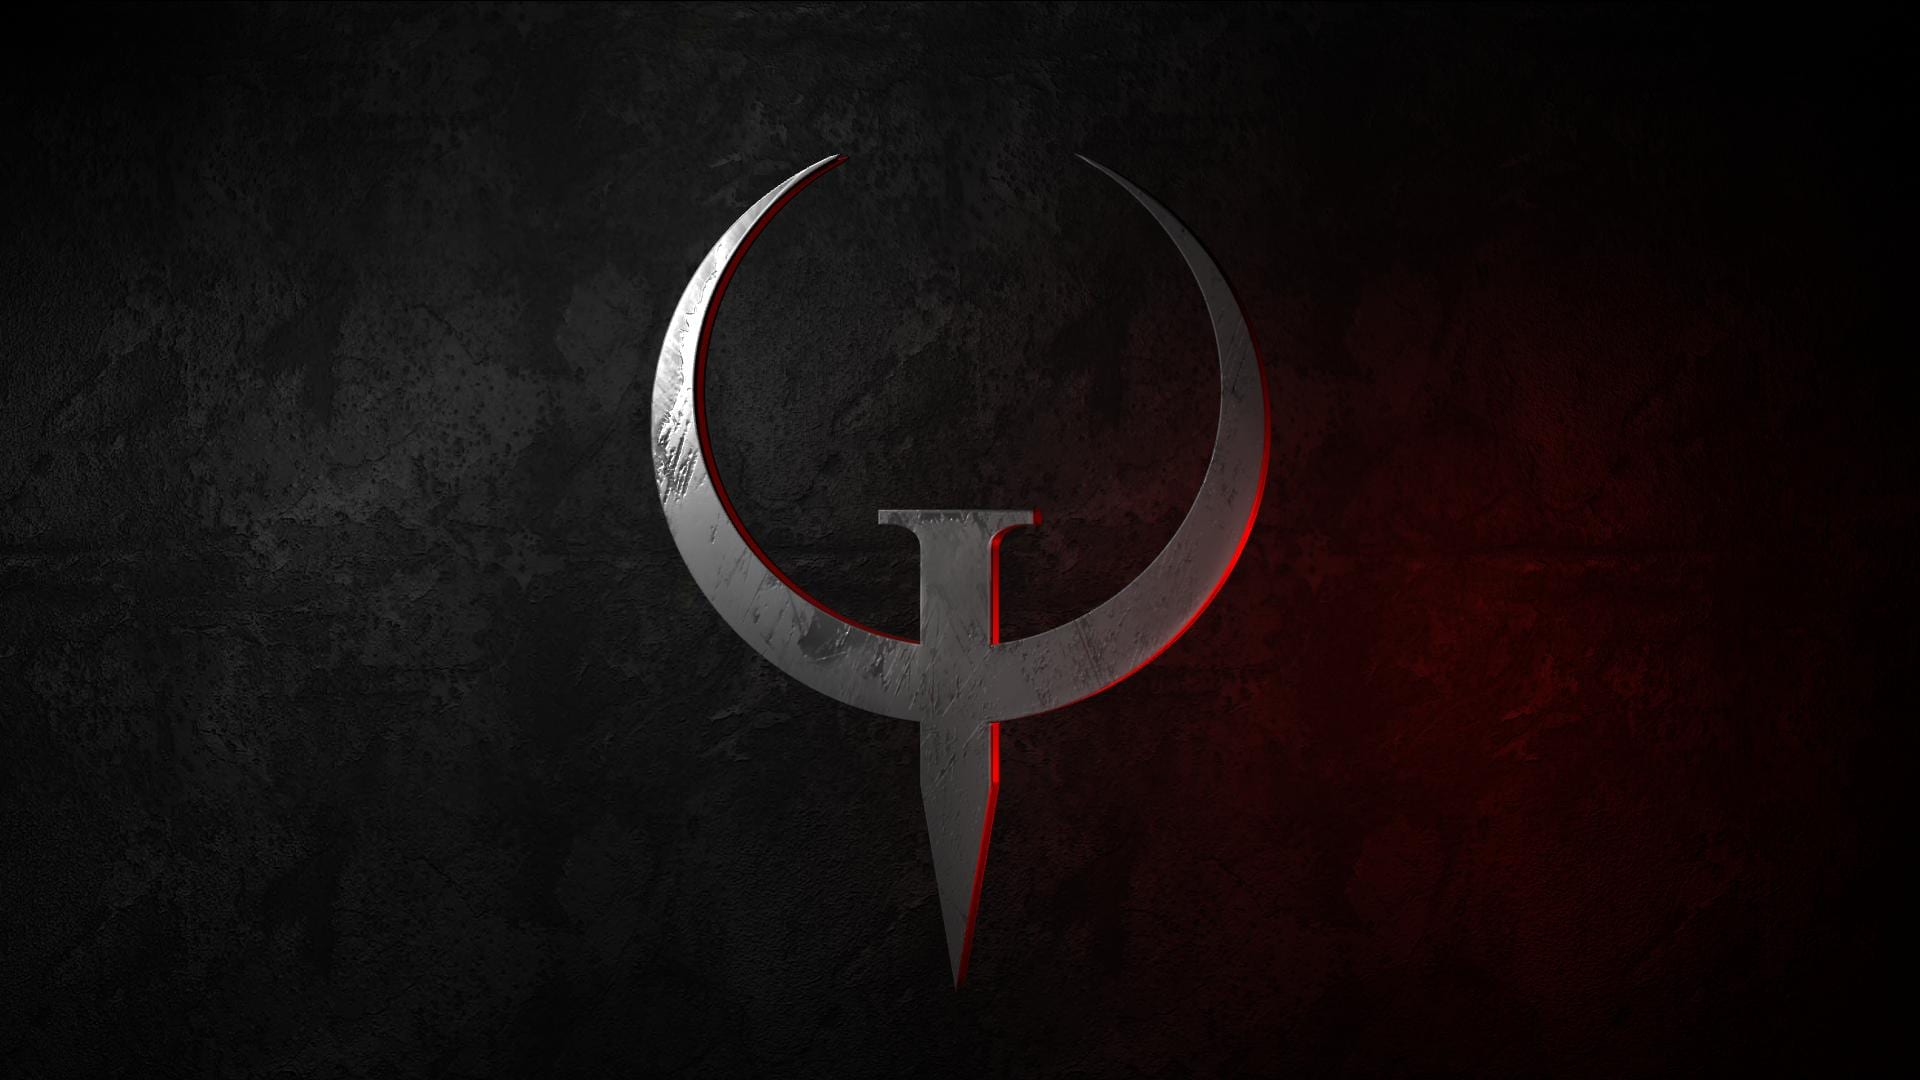 Quake Champions closed beta open for sign up